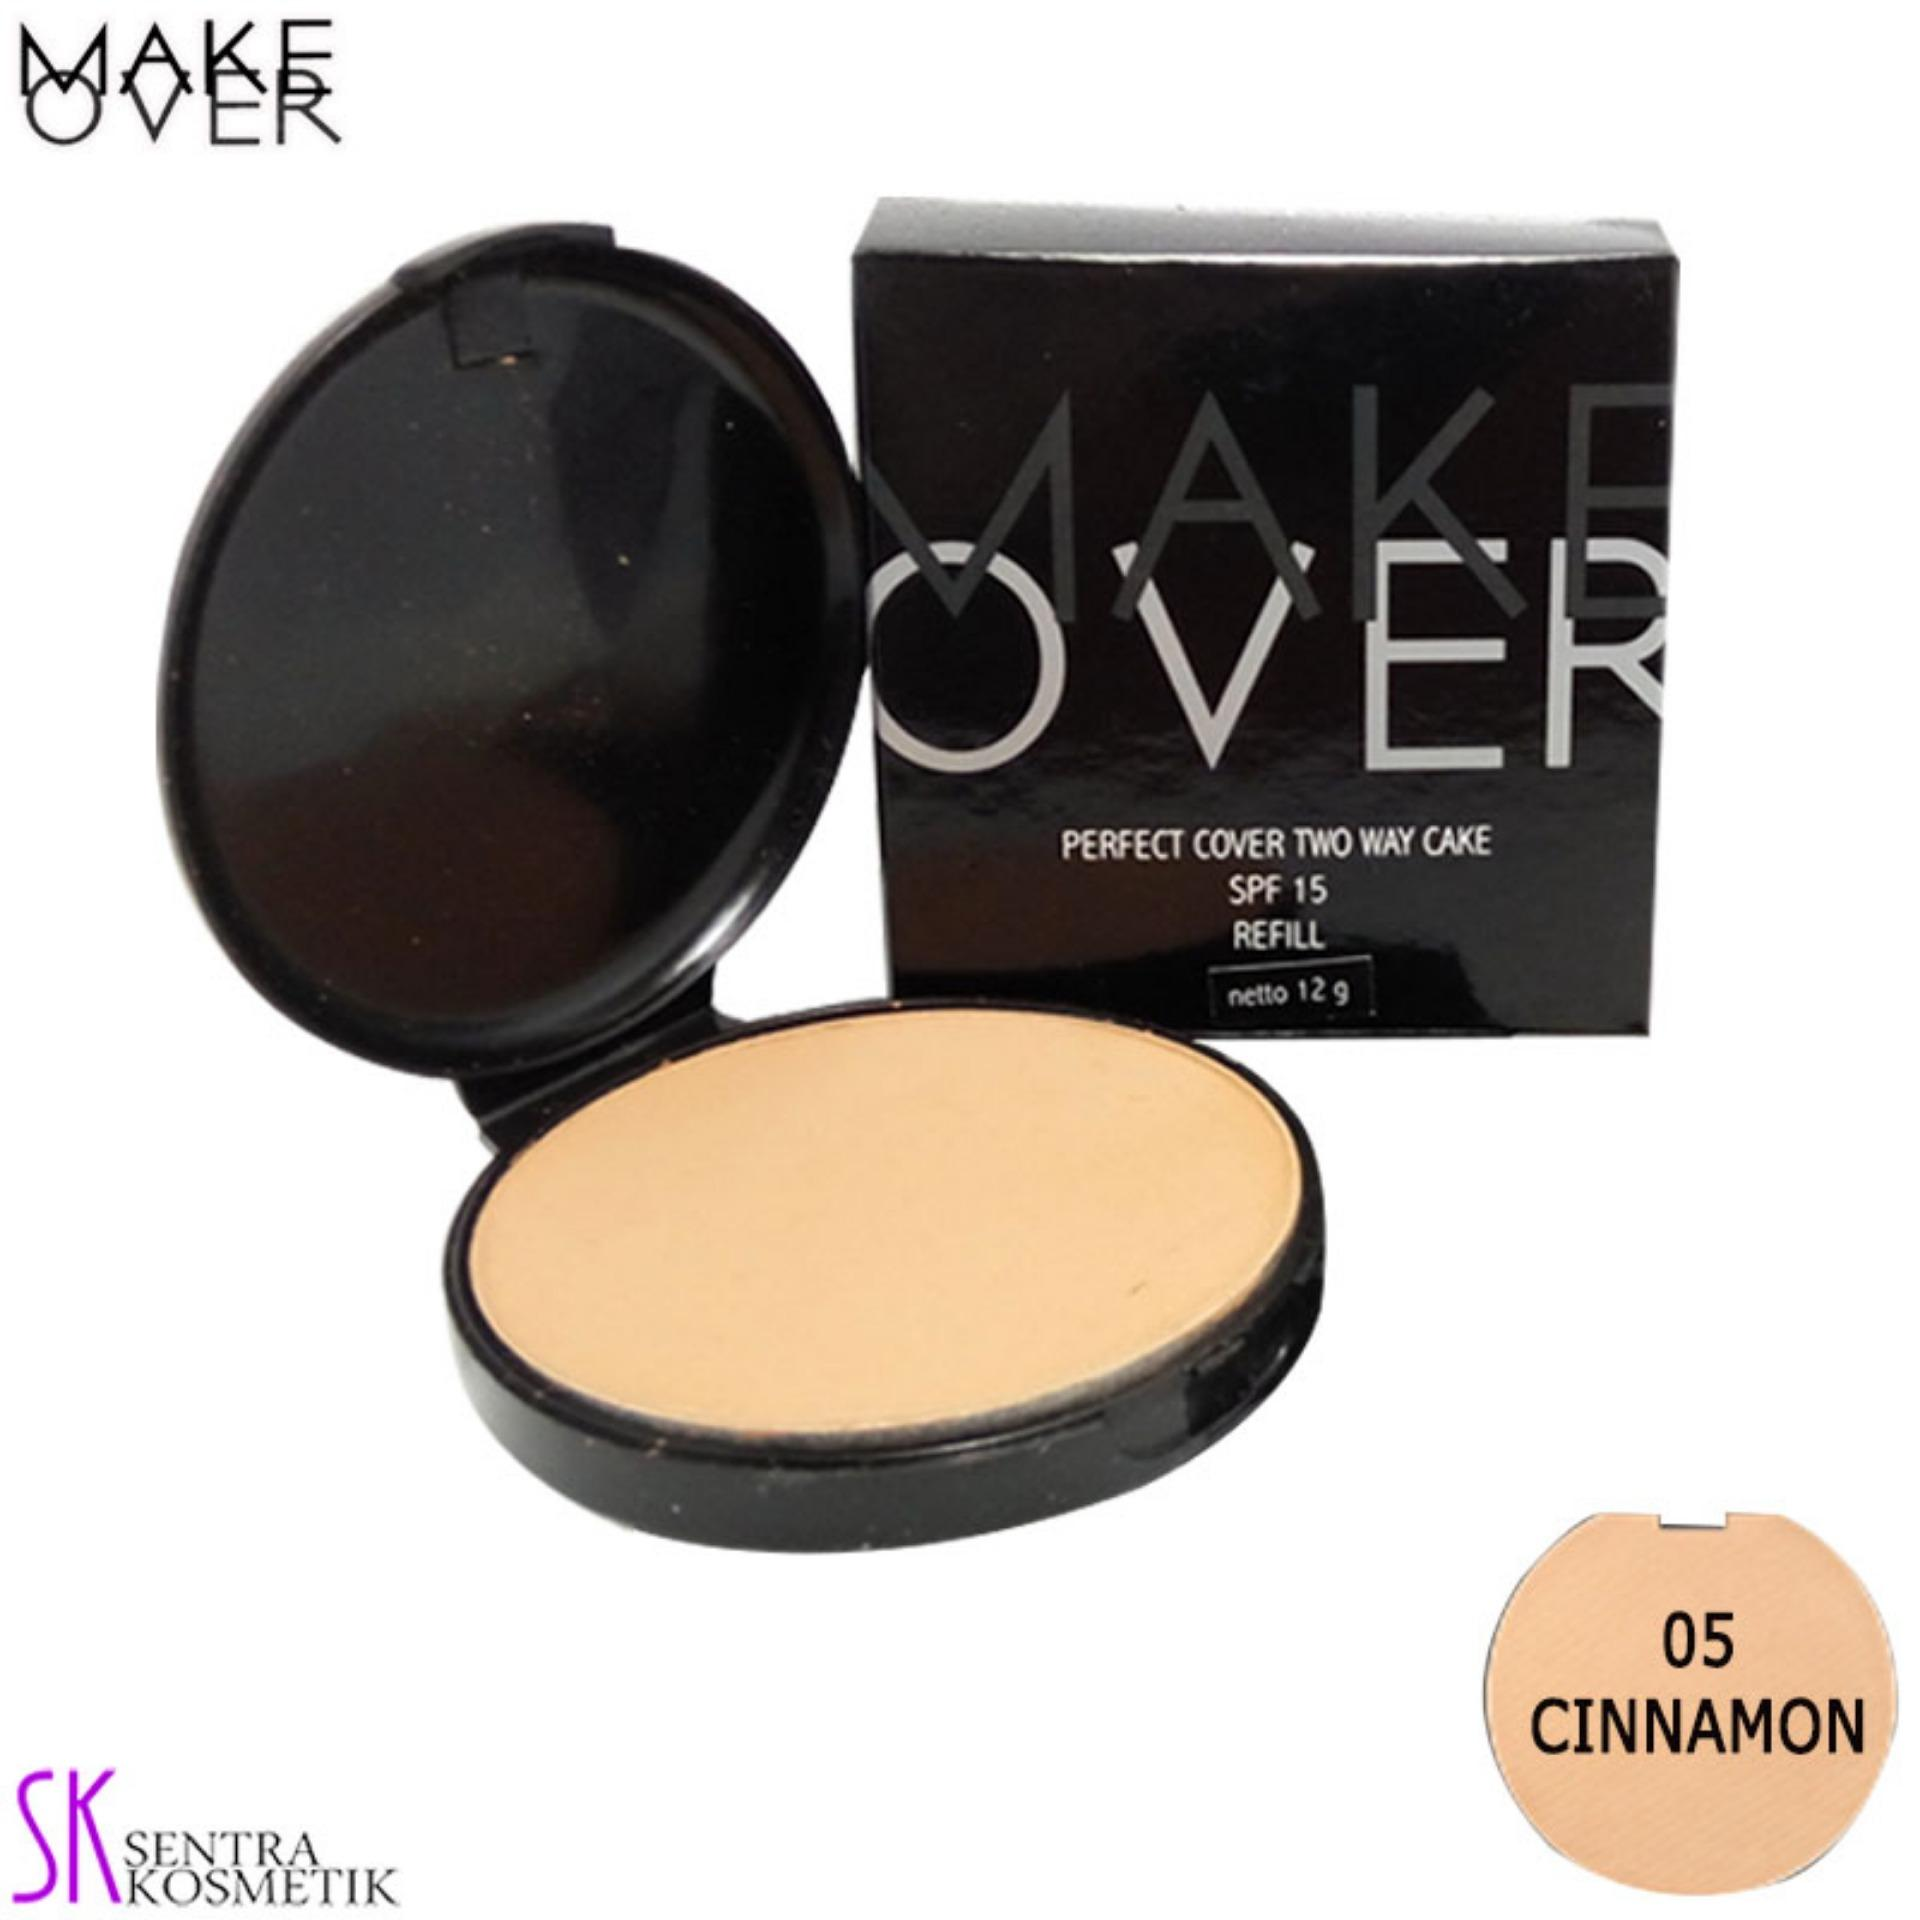 Make Over Perfect Cover REFILL Two Way Cake 05 - Cinnamon